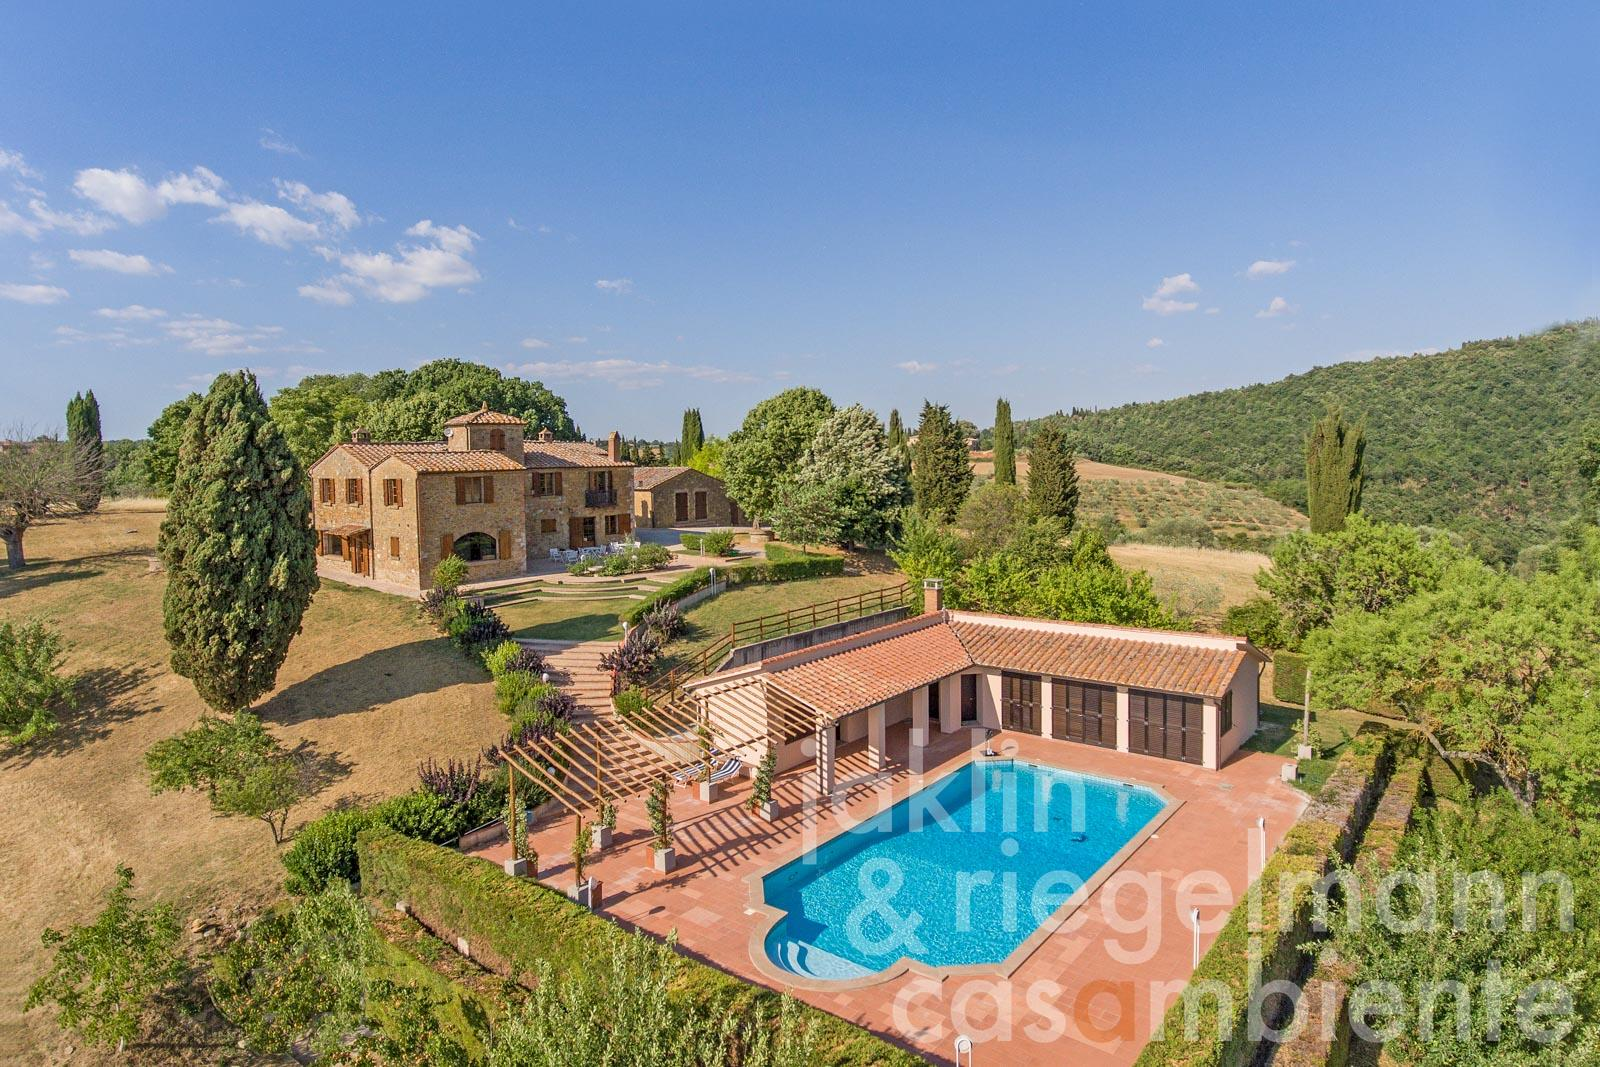 Imposing estate with 360° views over the hills of the Val D'Orcia near Pienza in Tuscany